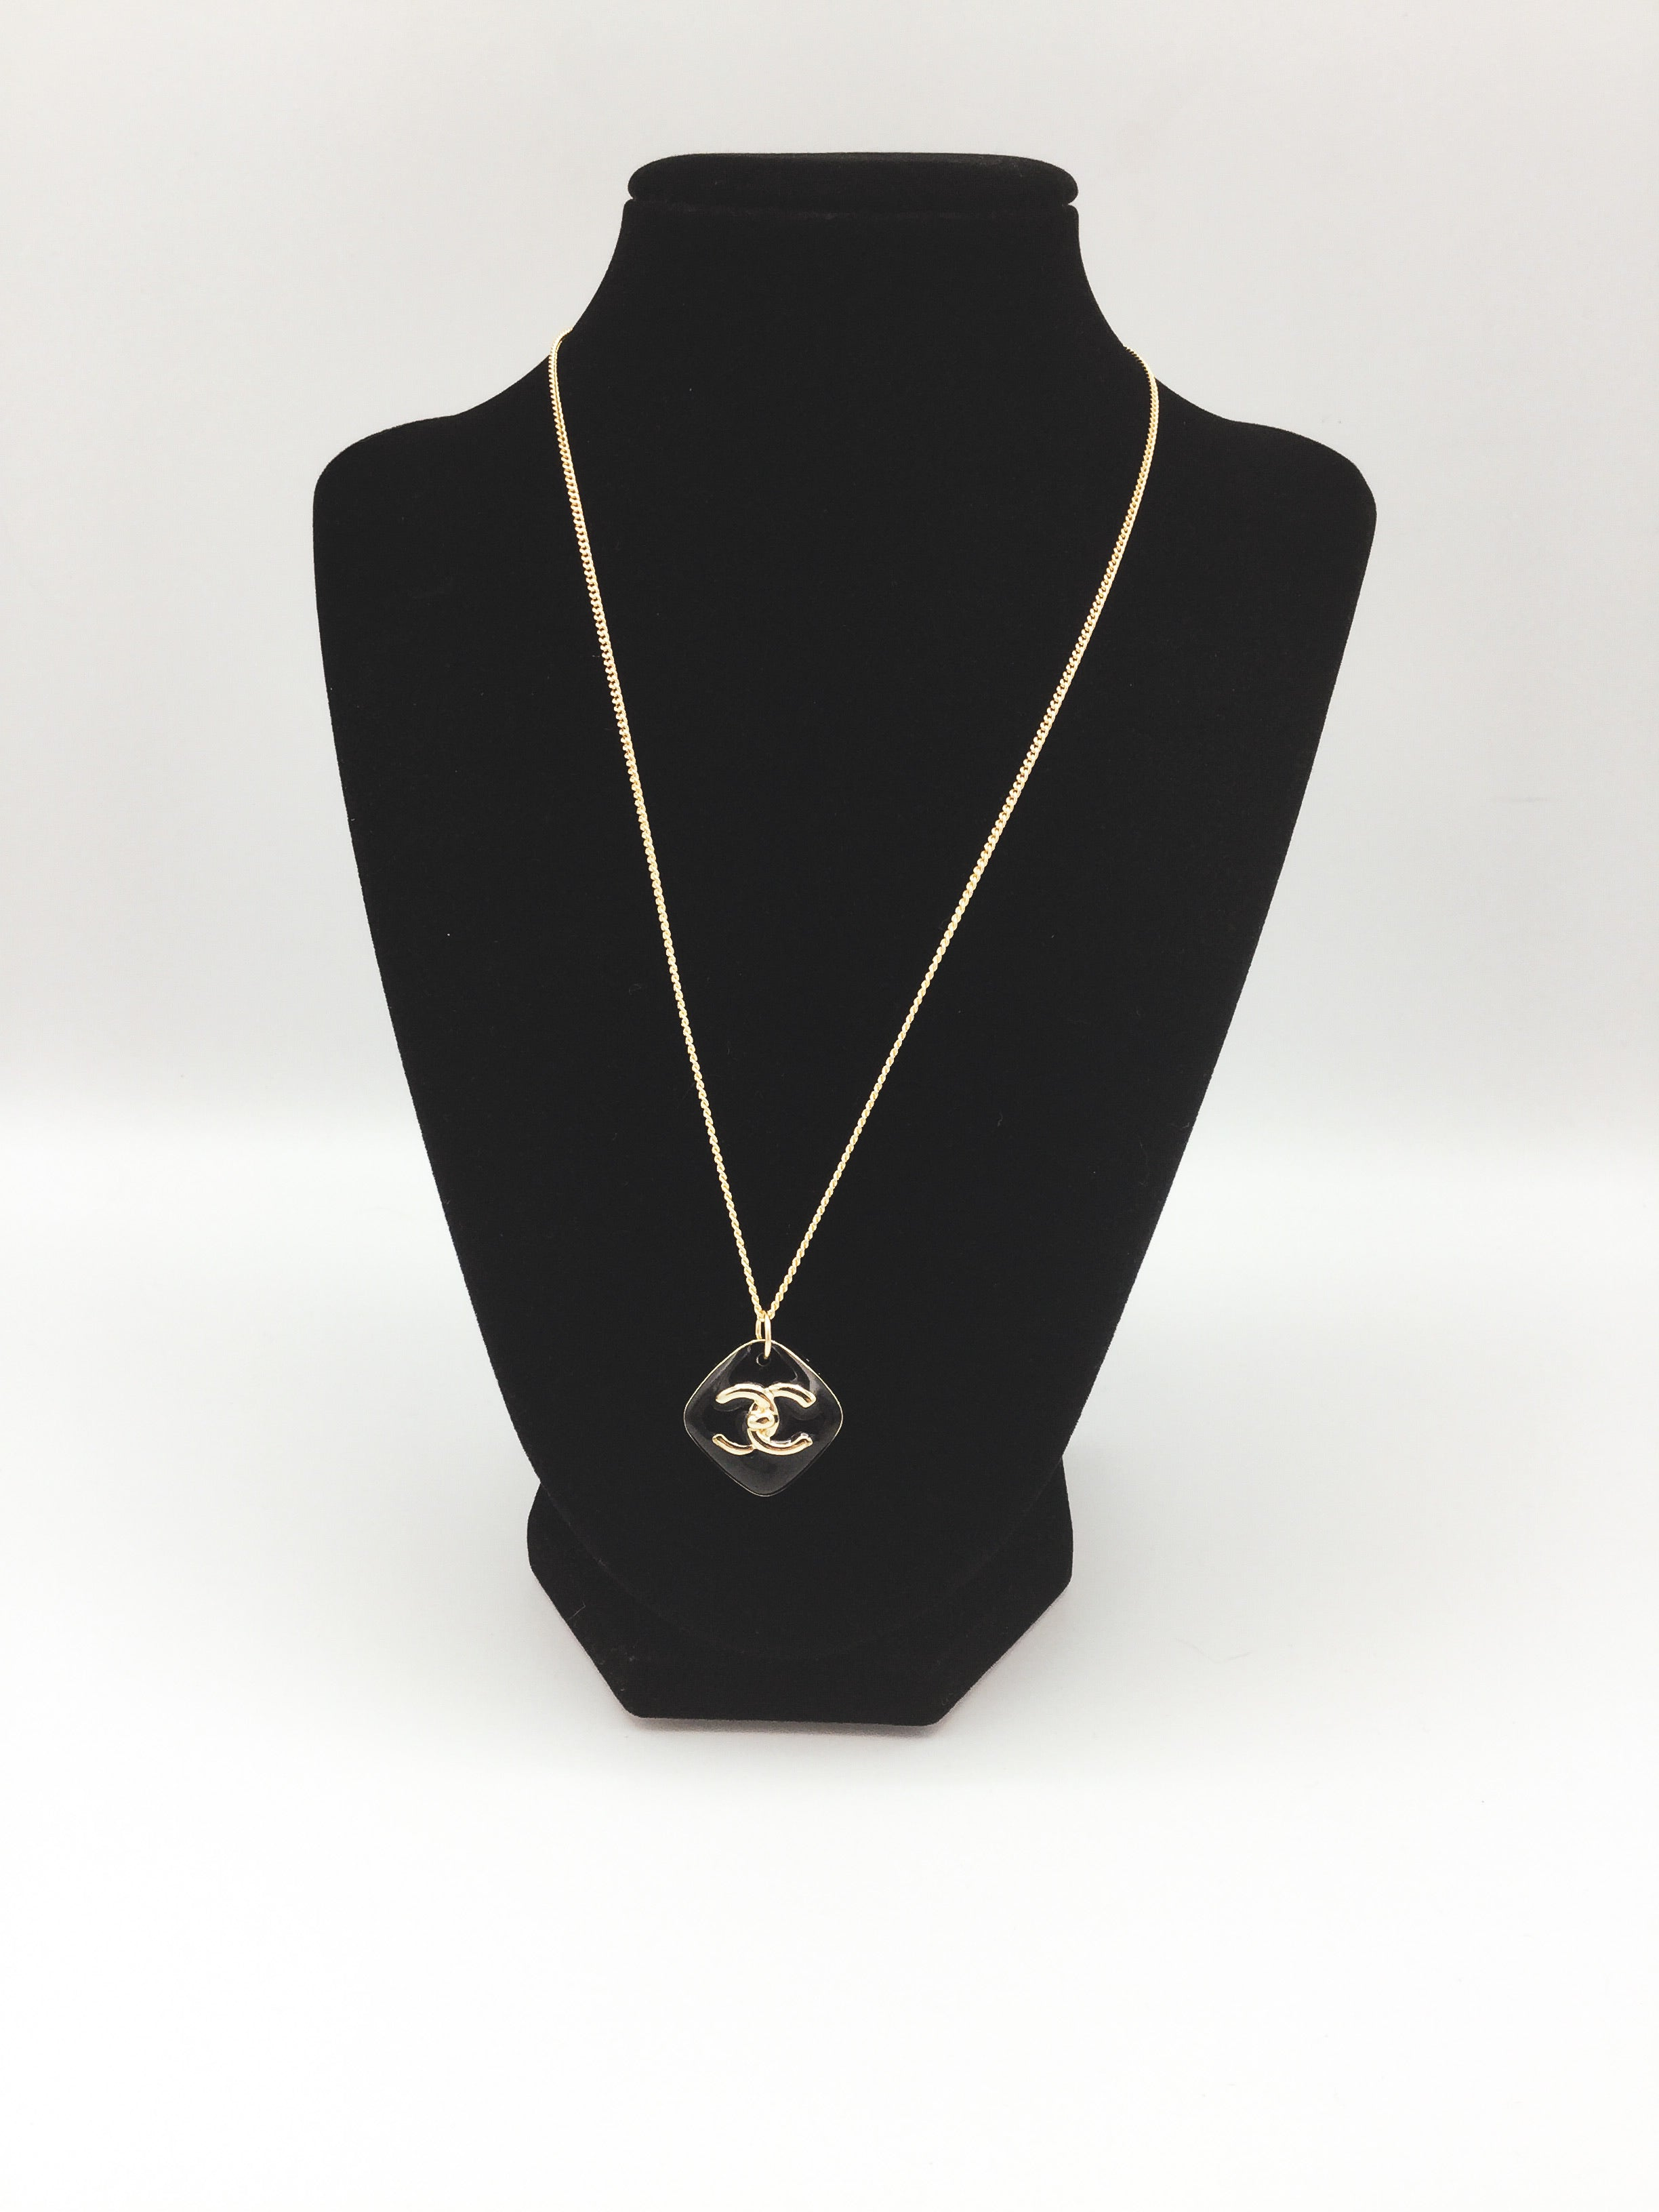 Designer Diamond-Shaped Button Black and Gold Necklace